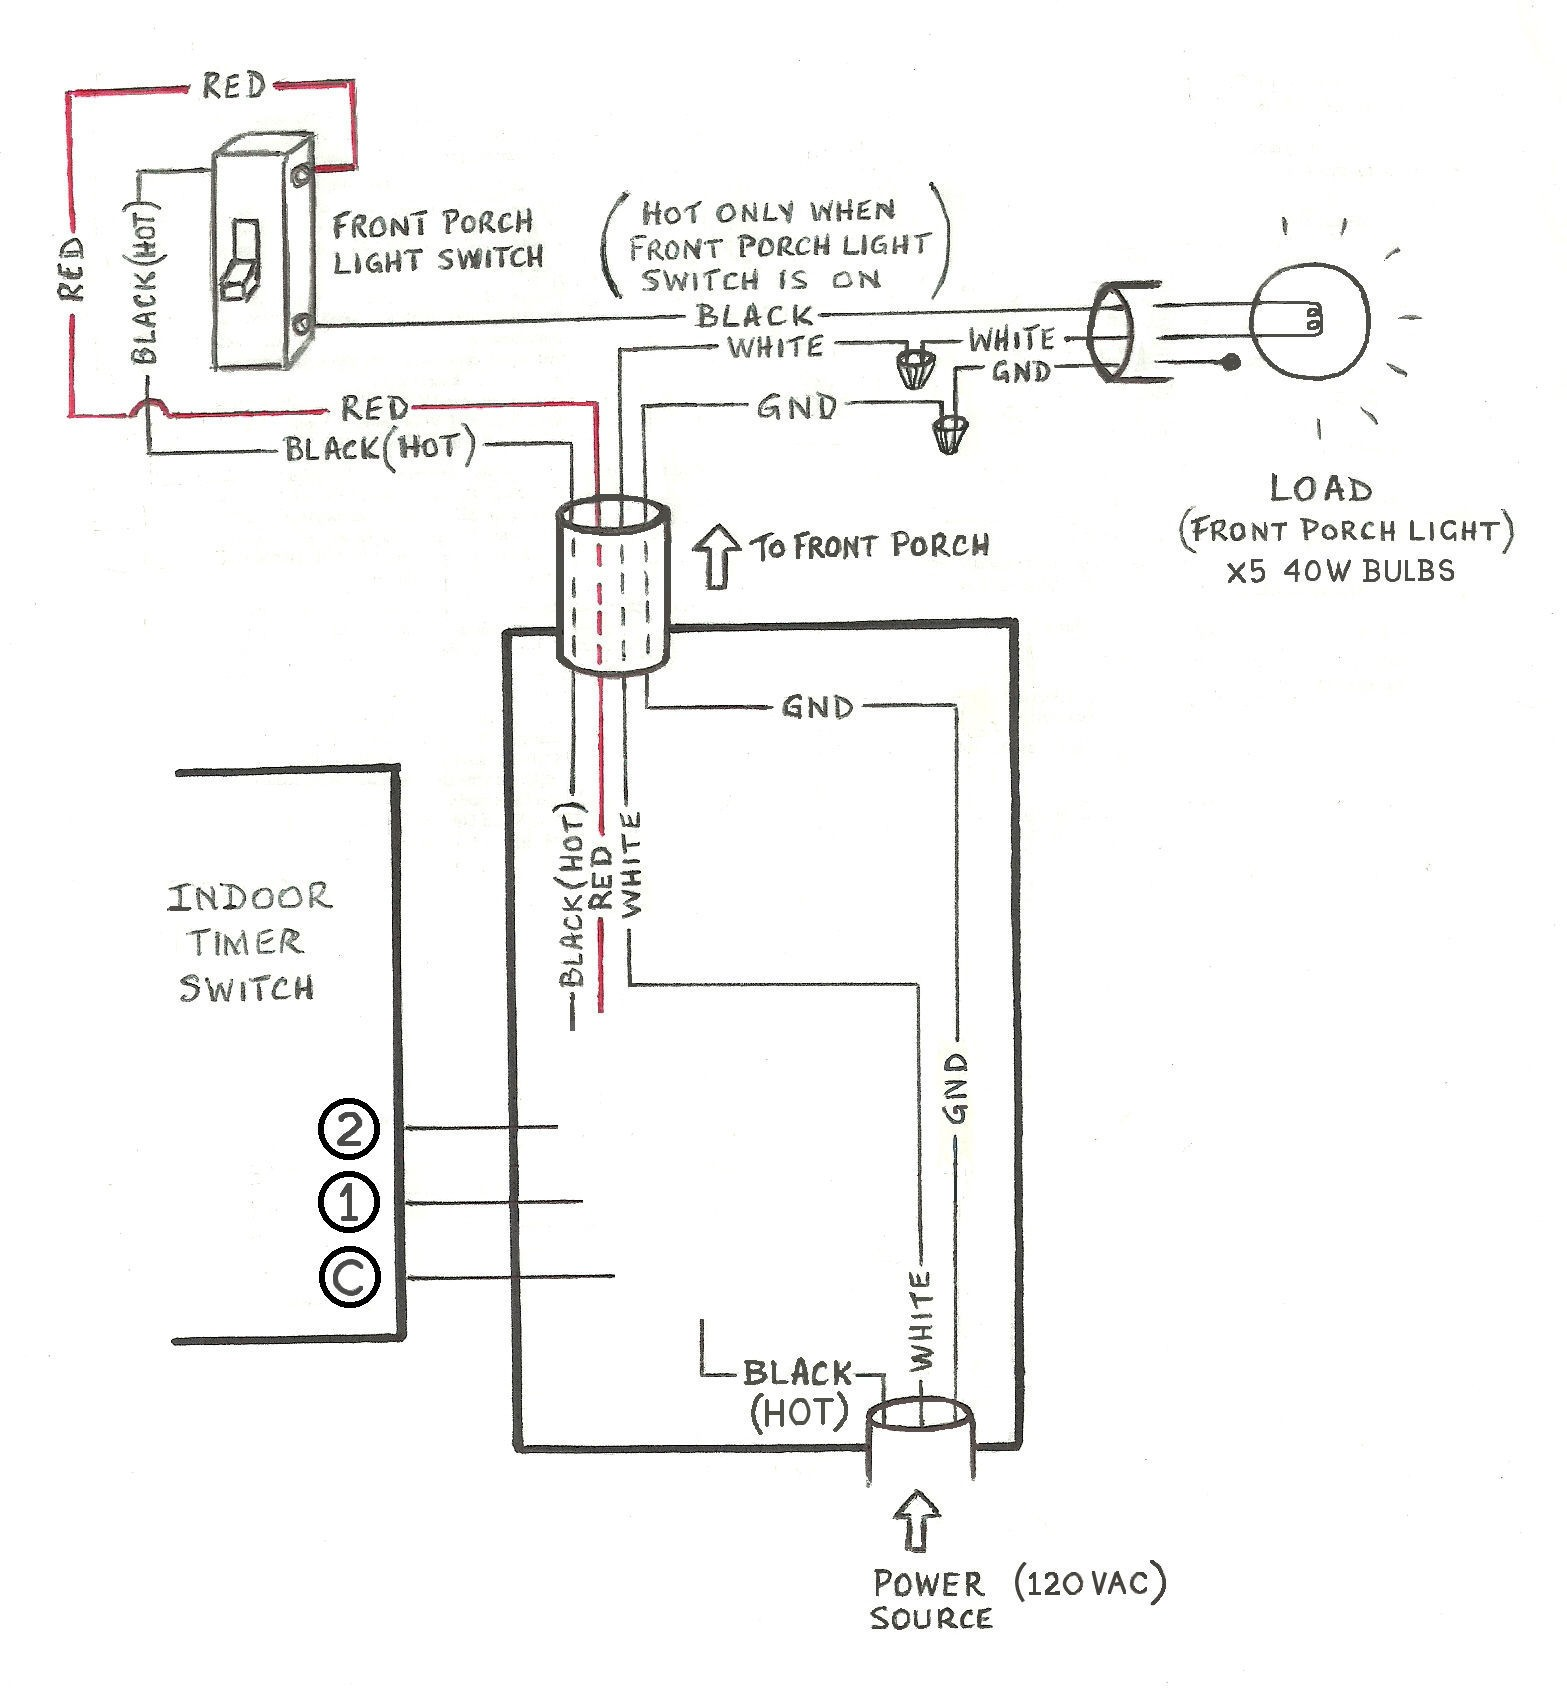 Bg 6922 Tork Photoelectric Switch Wiring Diagram Download Diagram